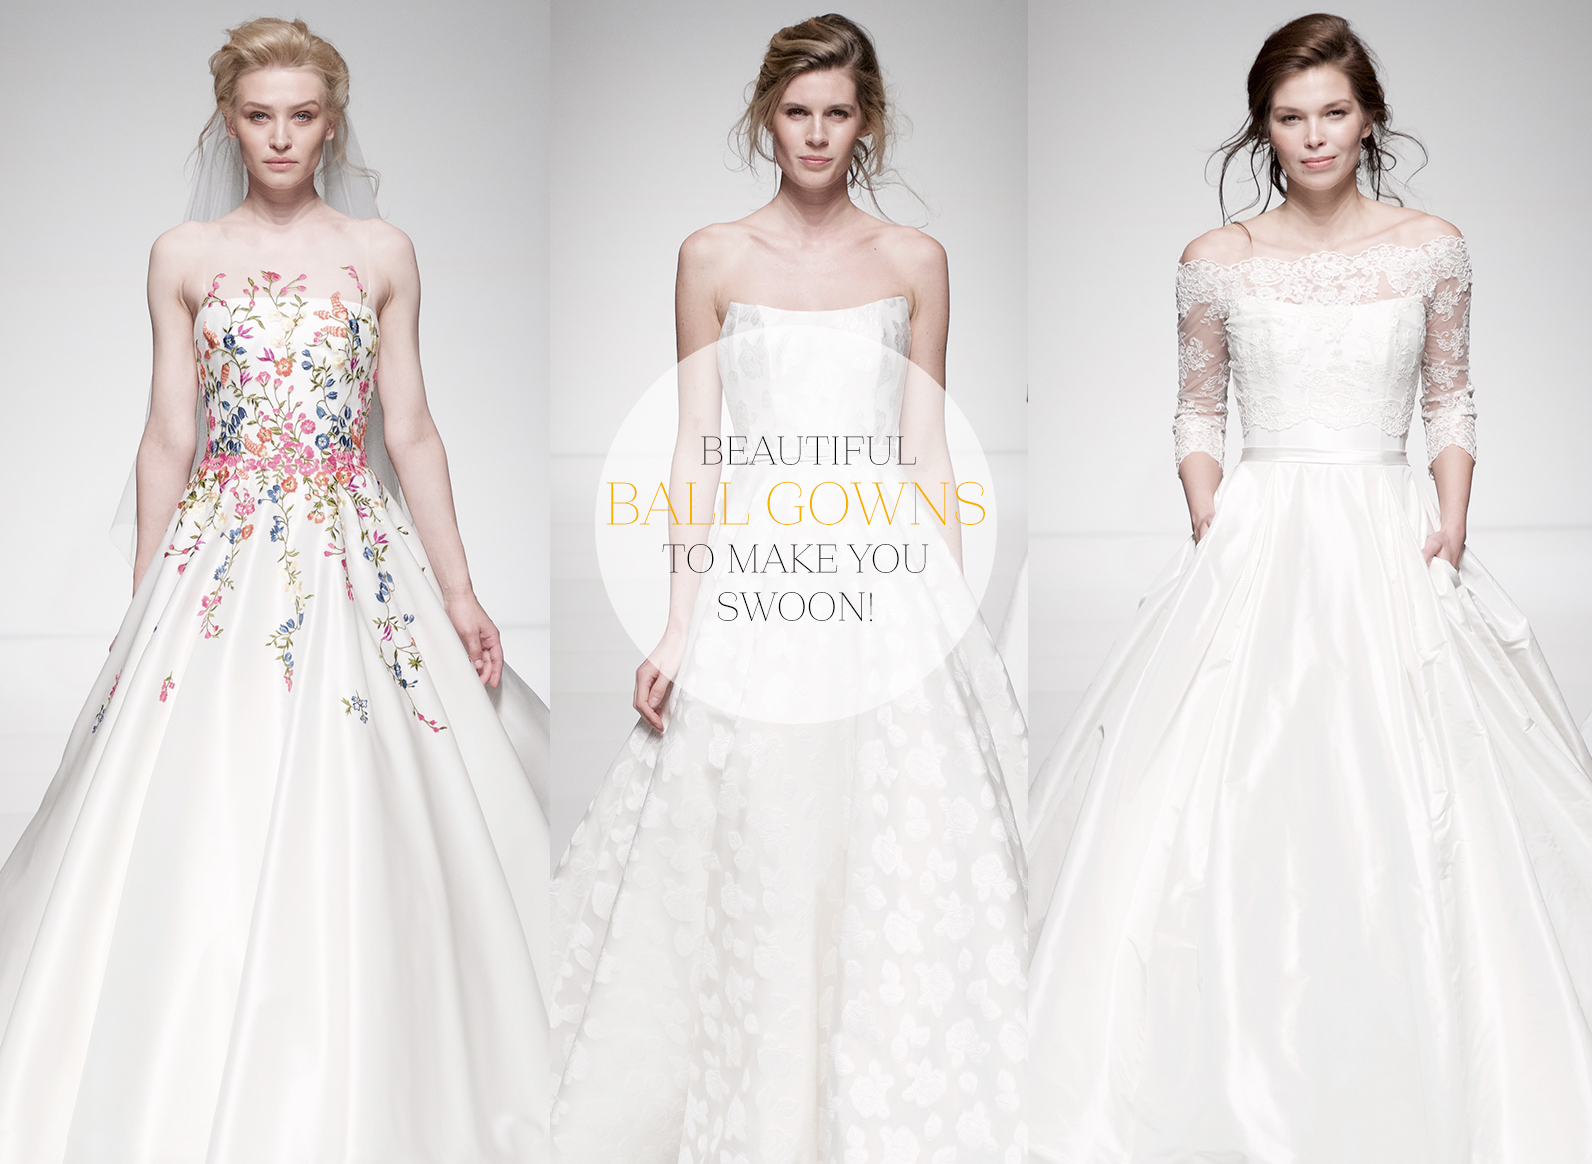 Beautiful ball gowns to make you swoon – Sassi Holford